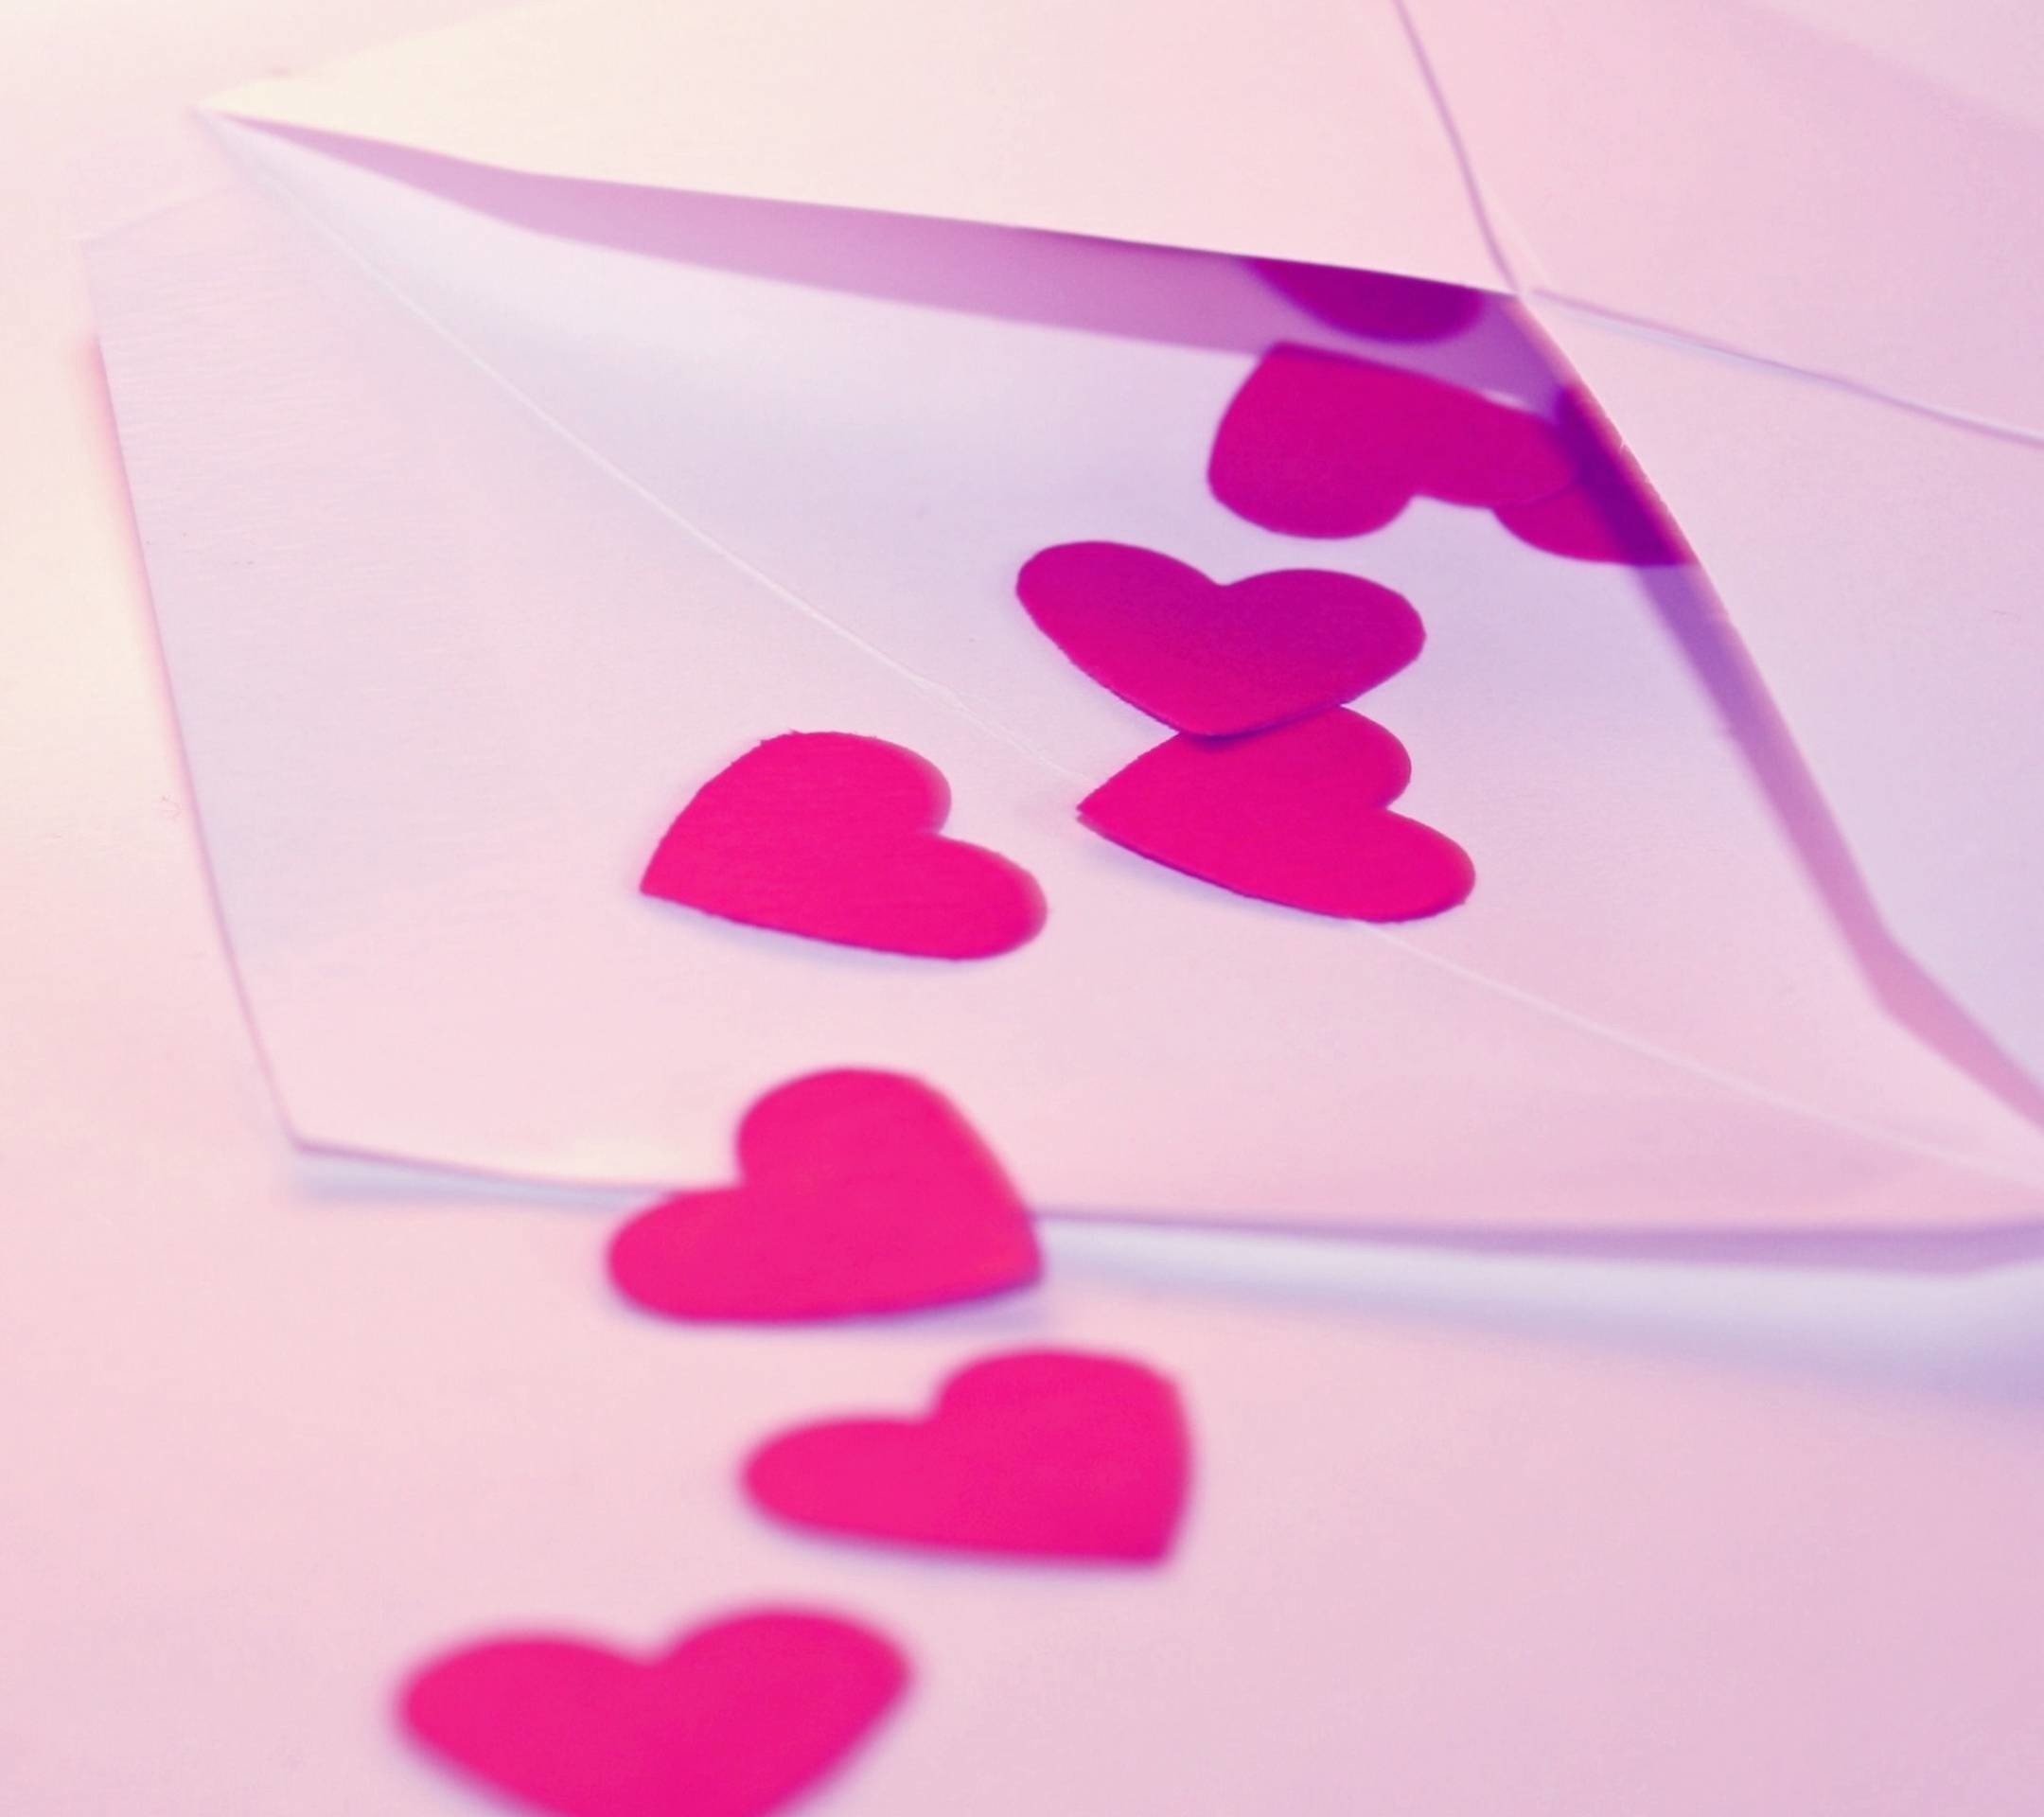 2160x1920 Pink Hearts Wallpapers, wallpaper, Pink Hearts Wallpapers hd .